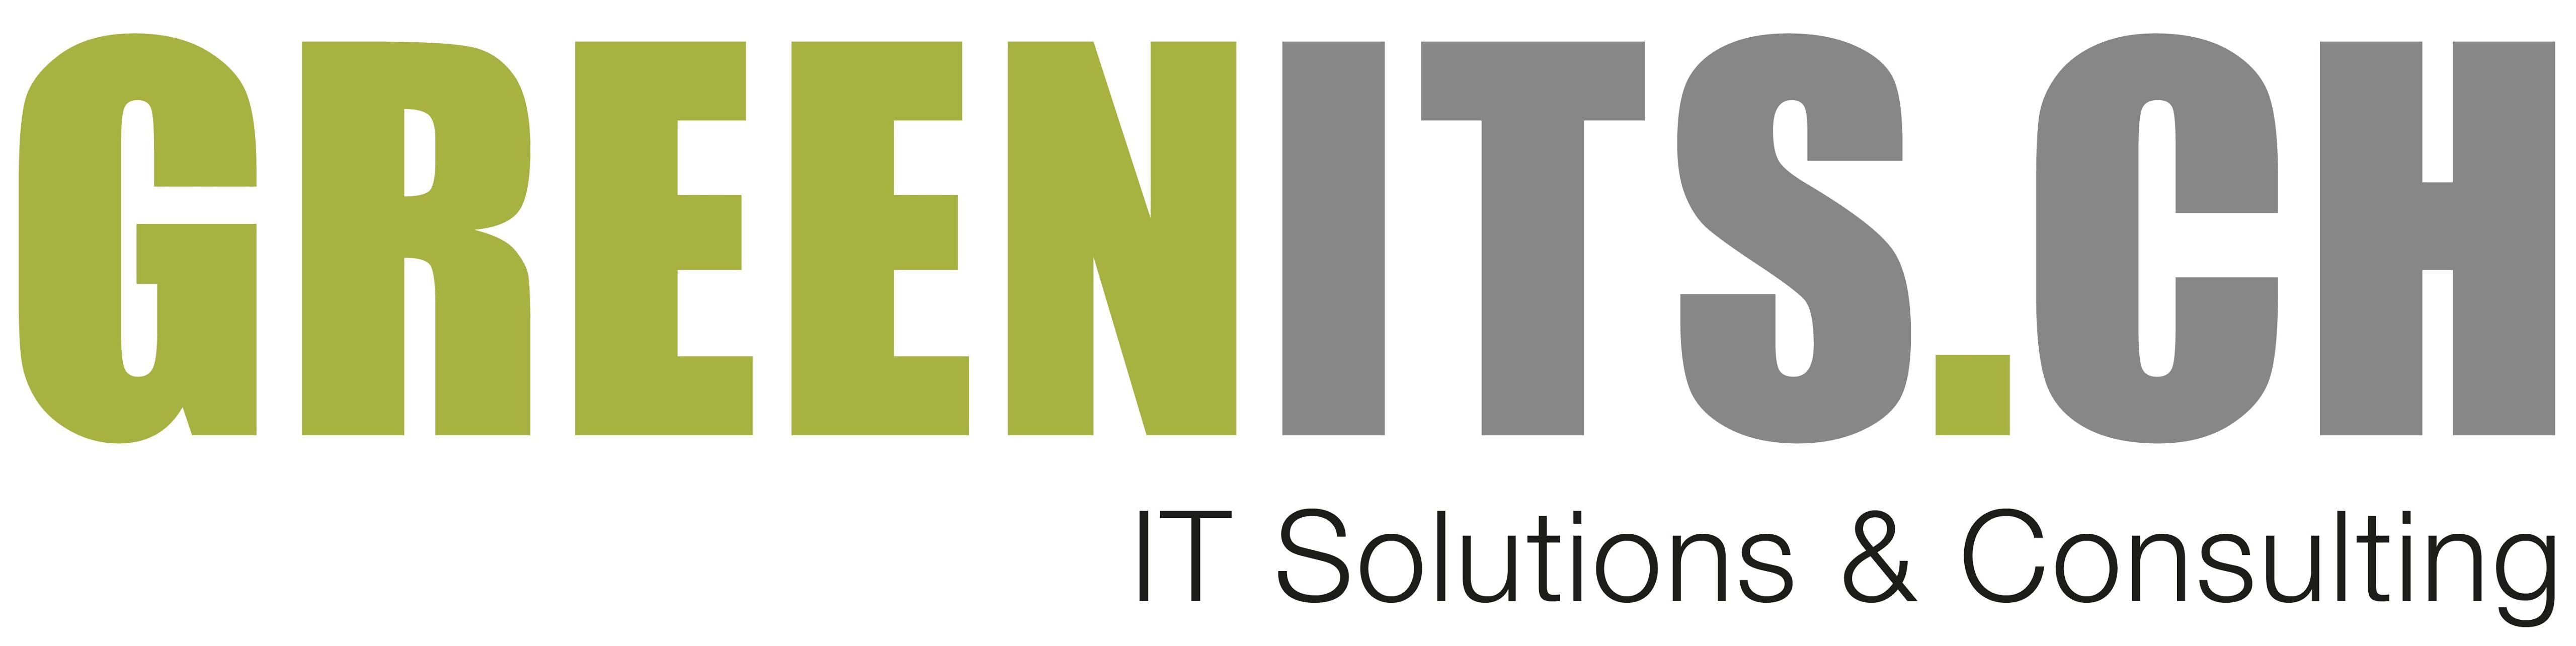 green it solutions gmbh